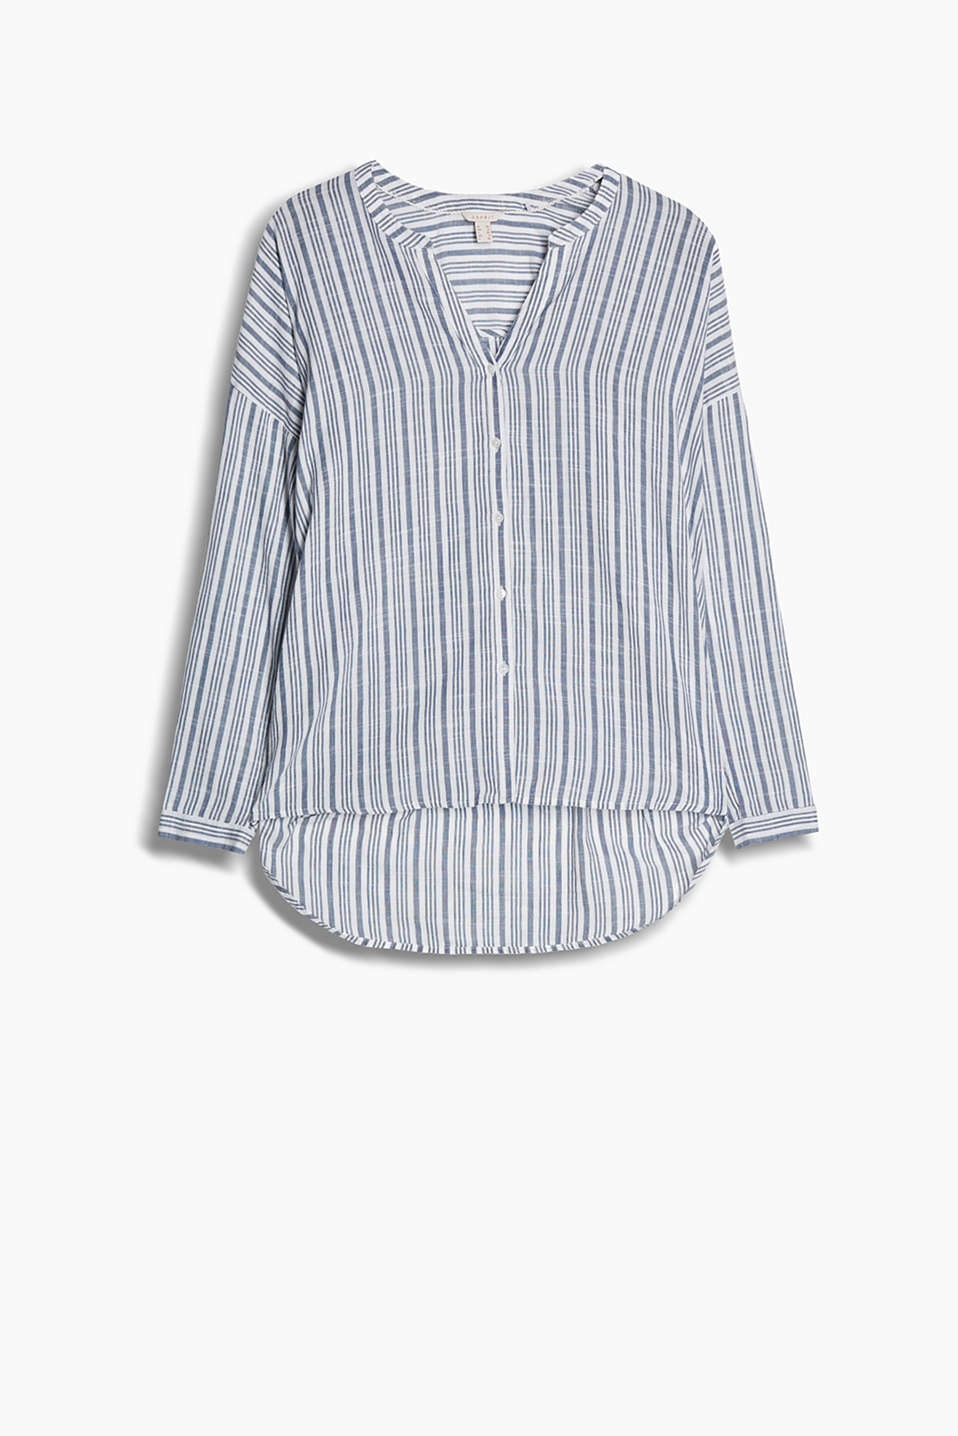 Light, striped shirt with a Henley neckline and turn-up sleeves made of pure cotton